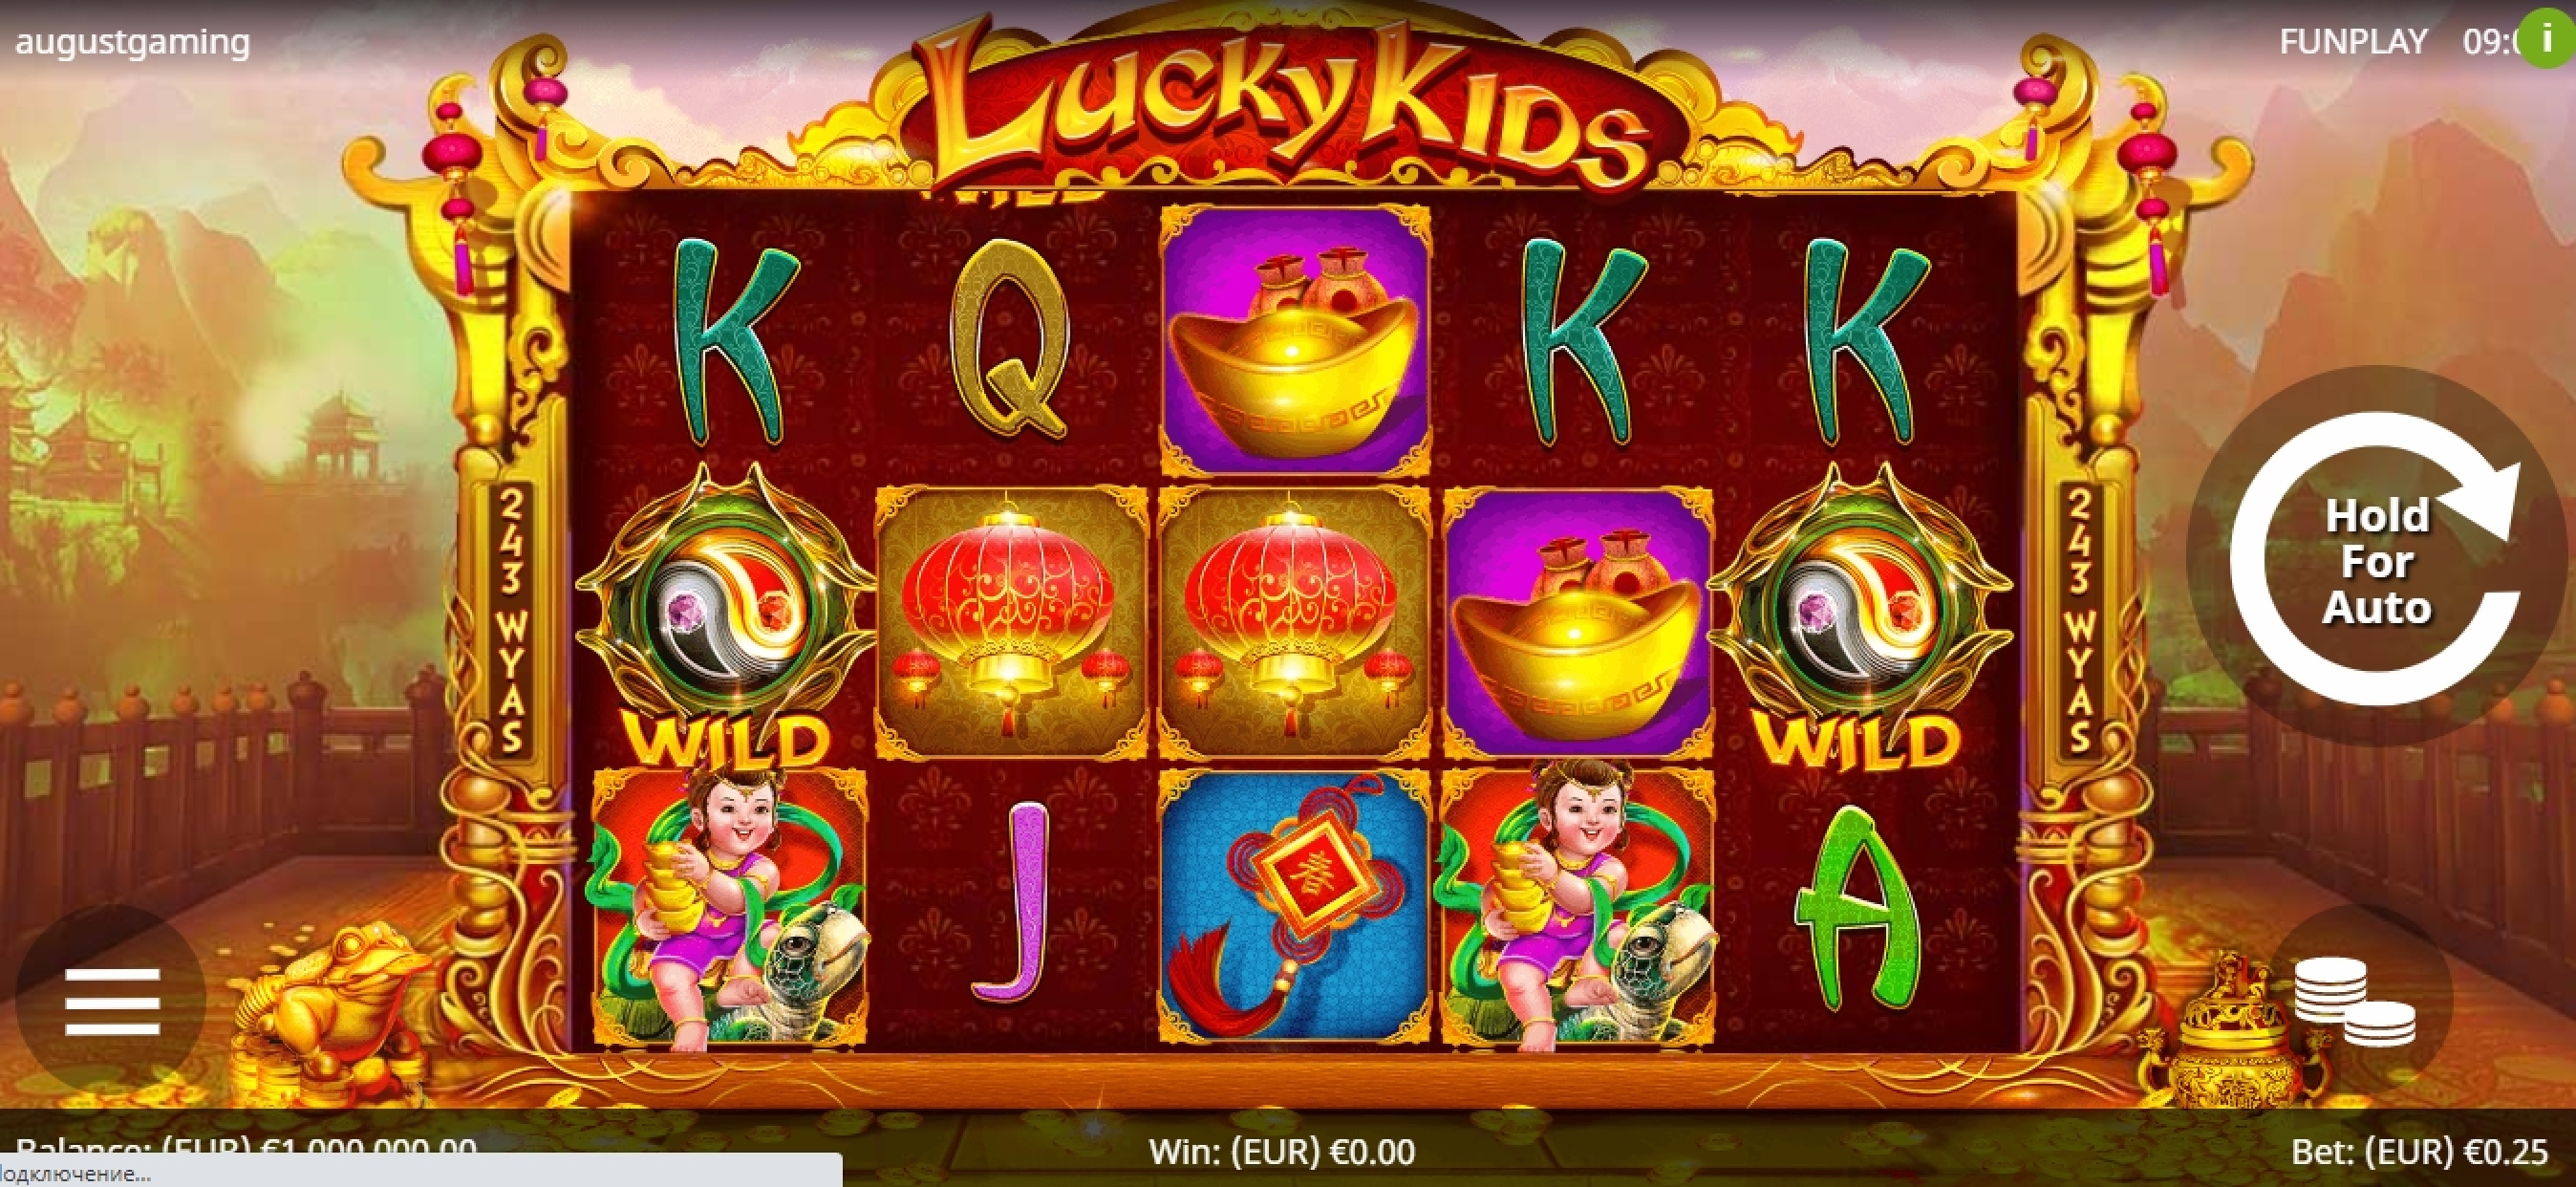 Reels in Lucky Kids Slot Game by August Gaming